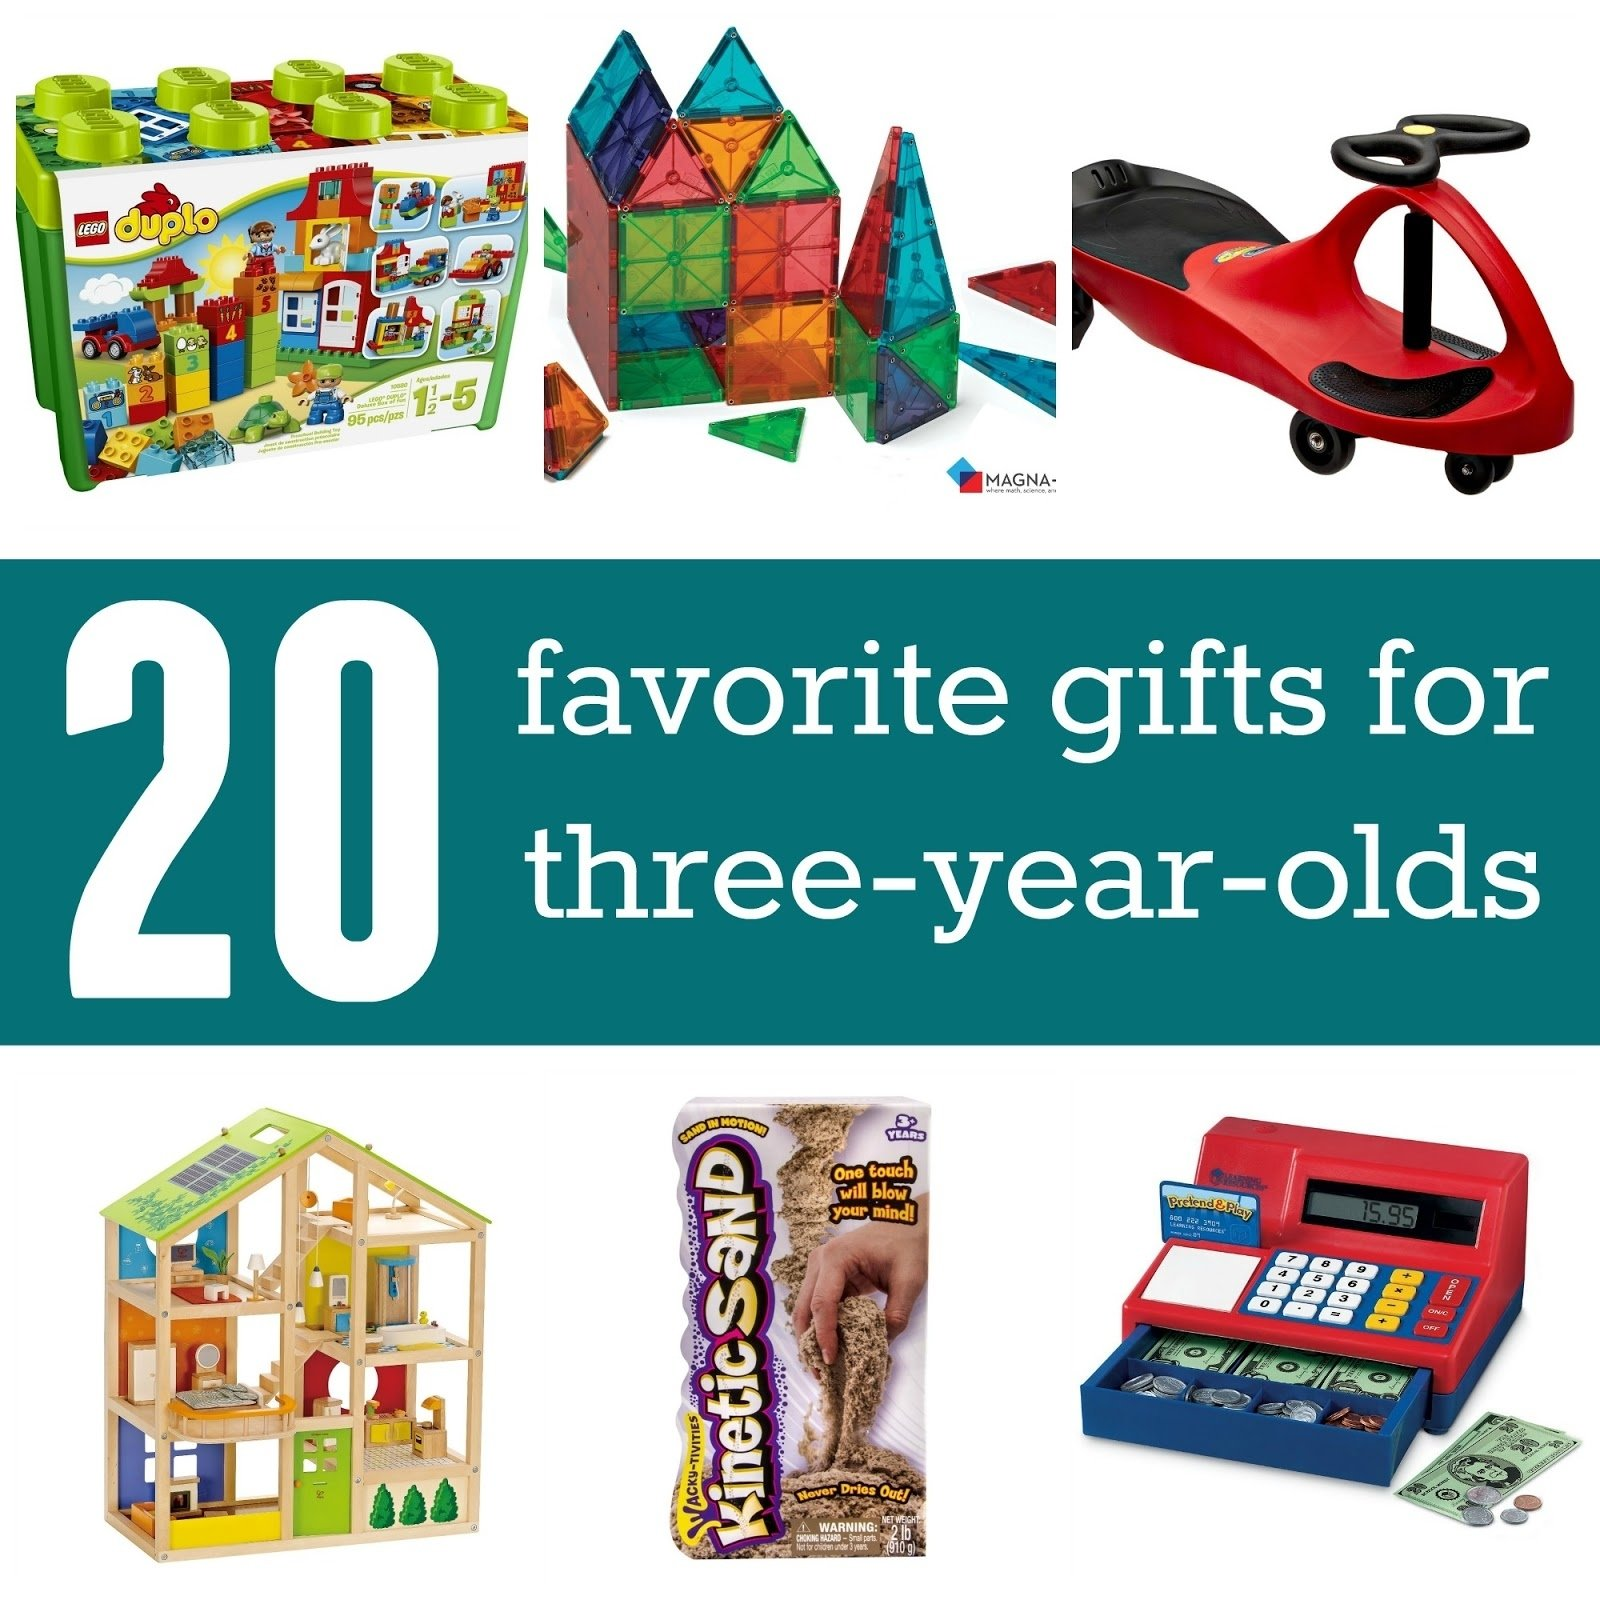 10 Wonderful Birthday Gift Ideas For 3 Year Old Boy toddler approved favorite gifts for 3 year olds 2 2020